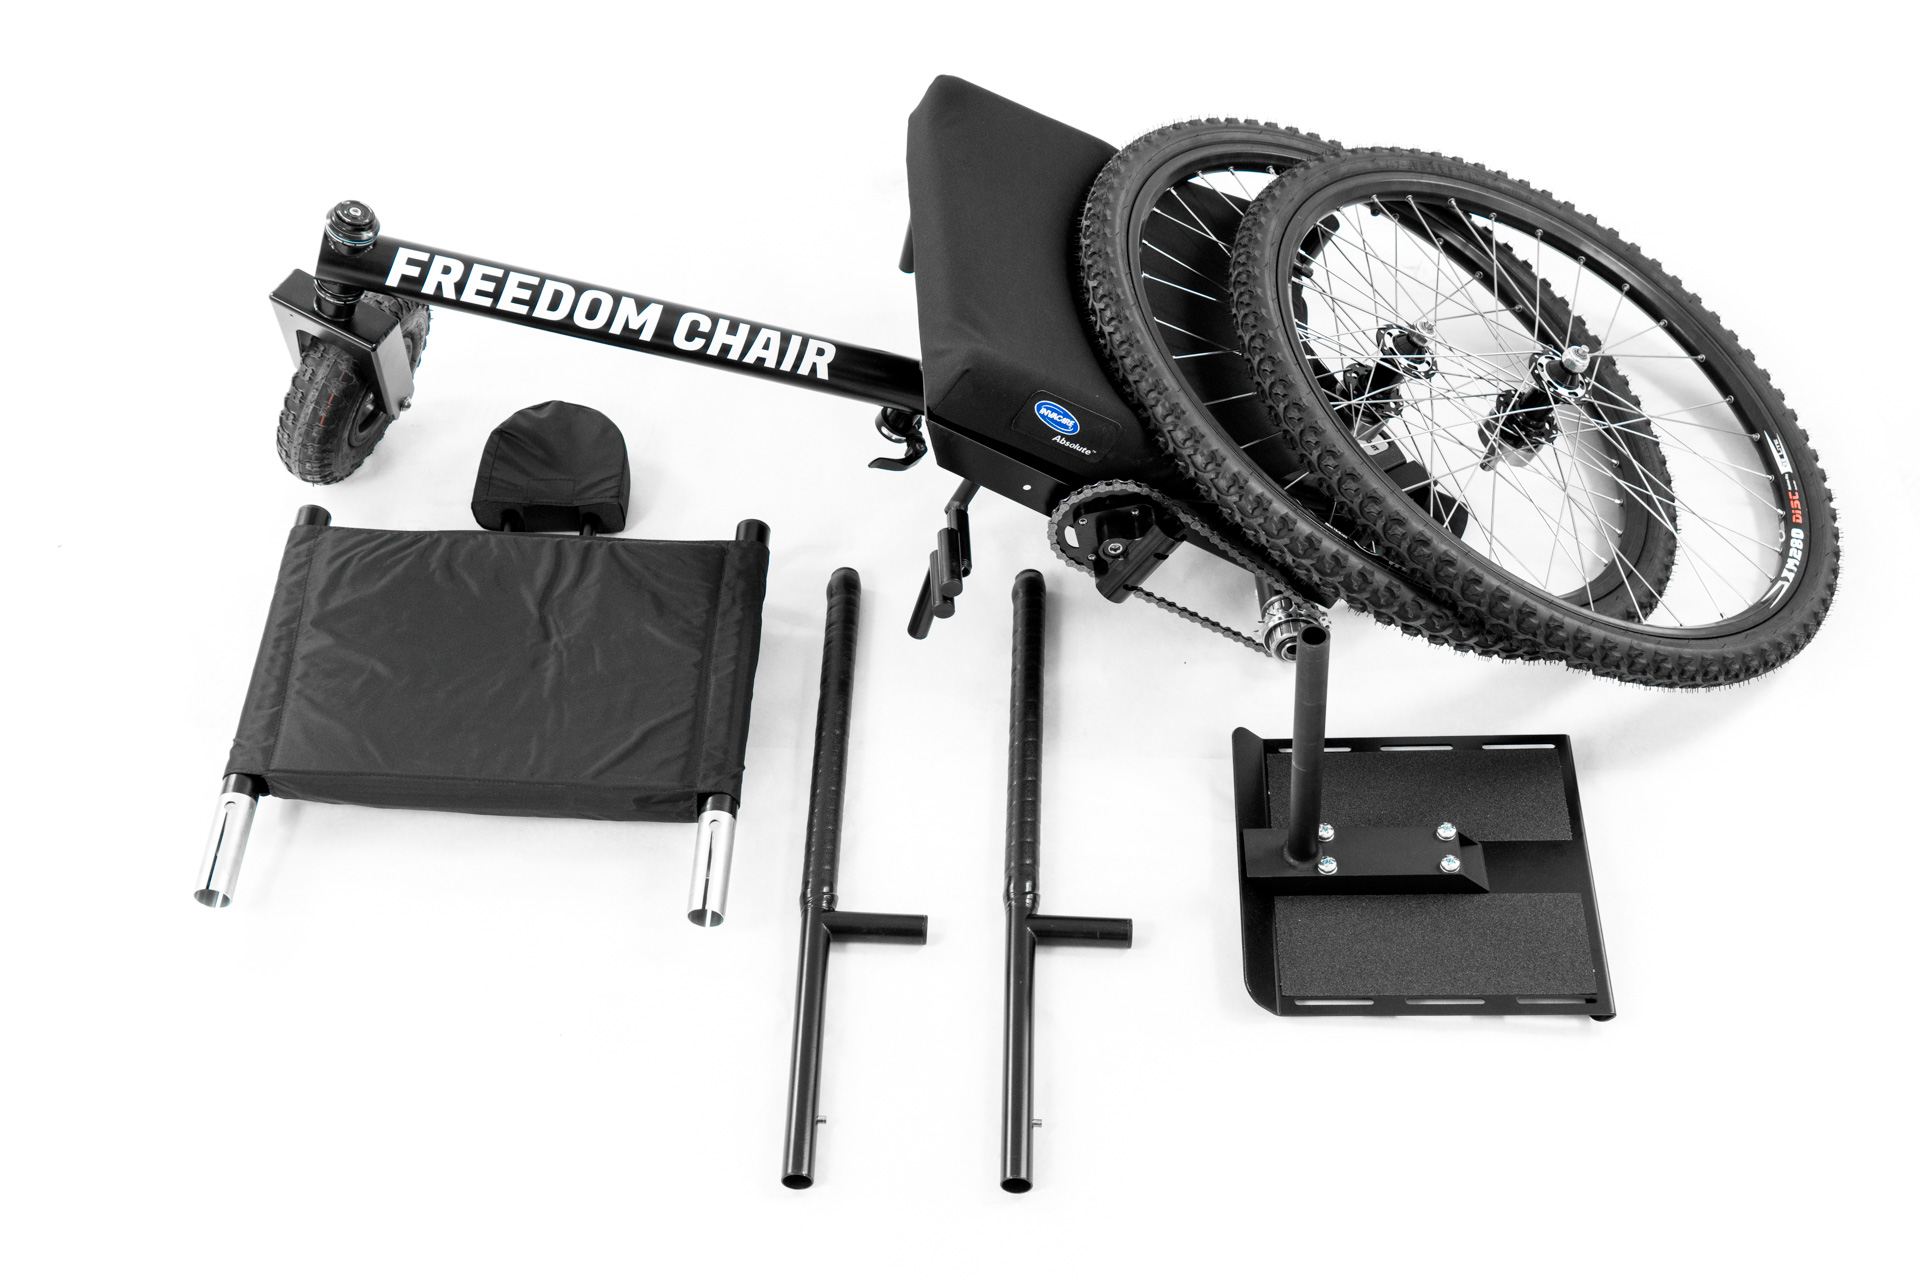 Grit Freedom Chair-06710.jpg